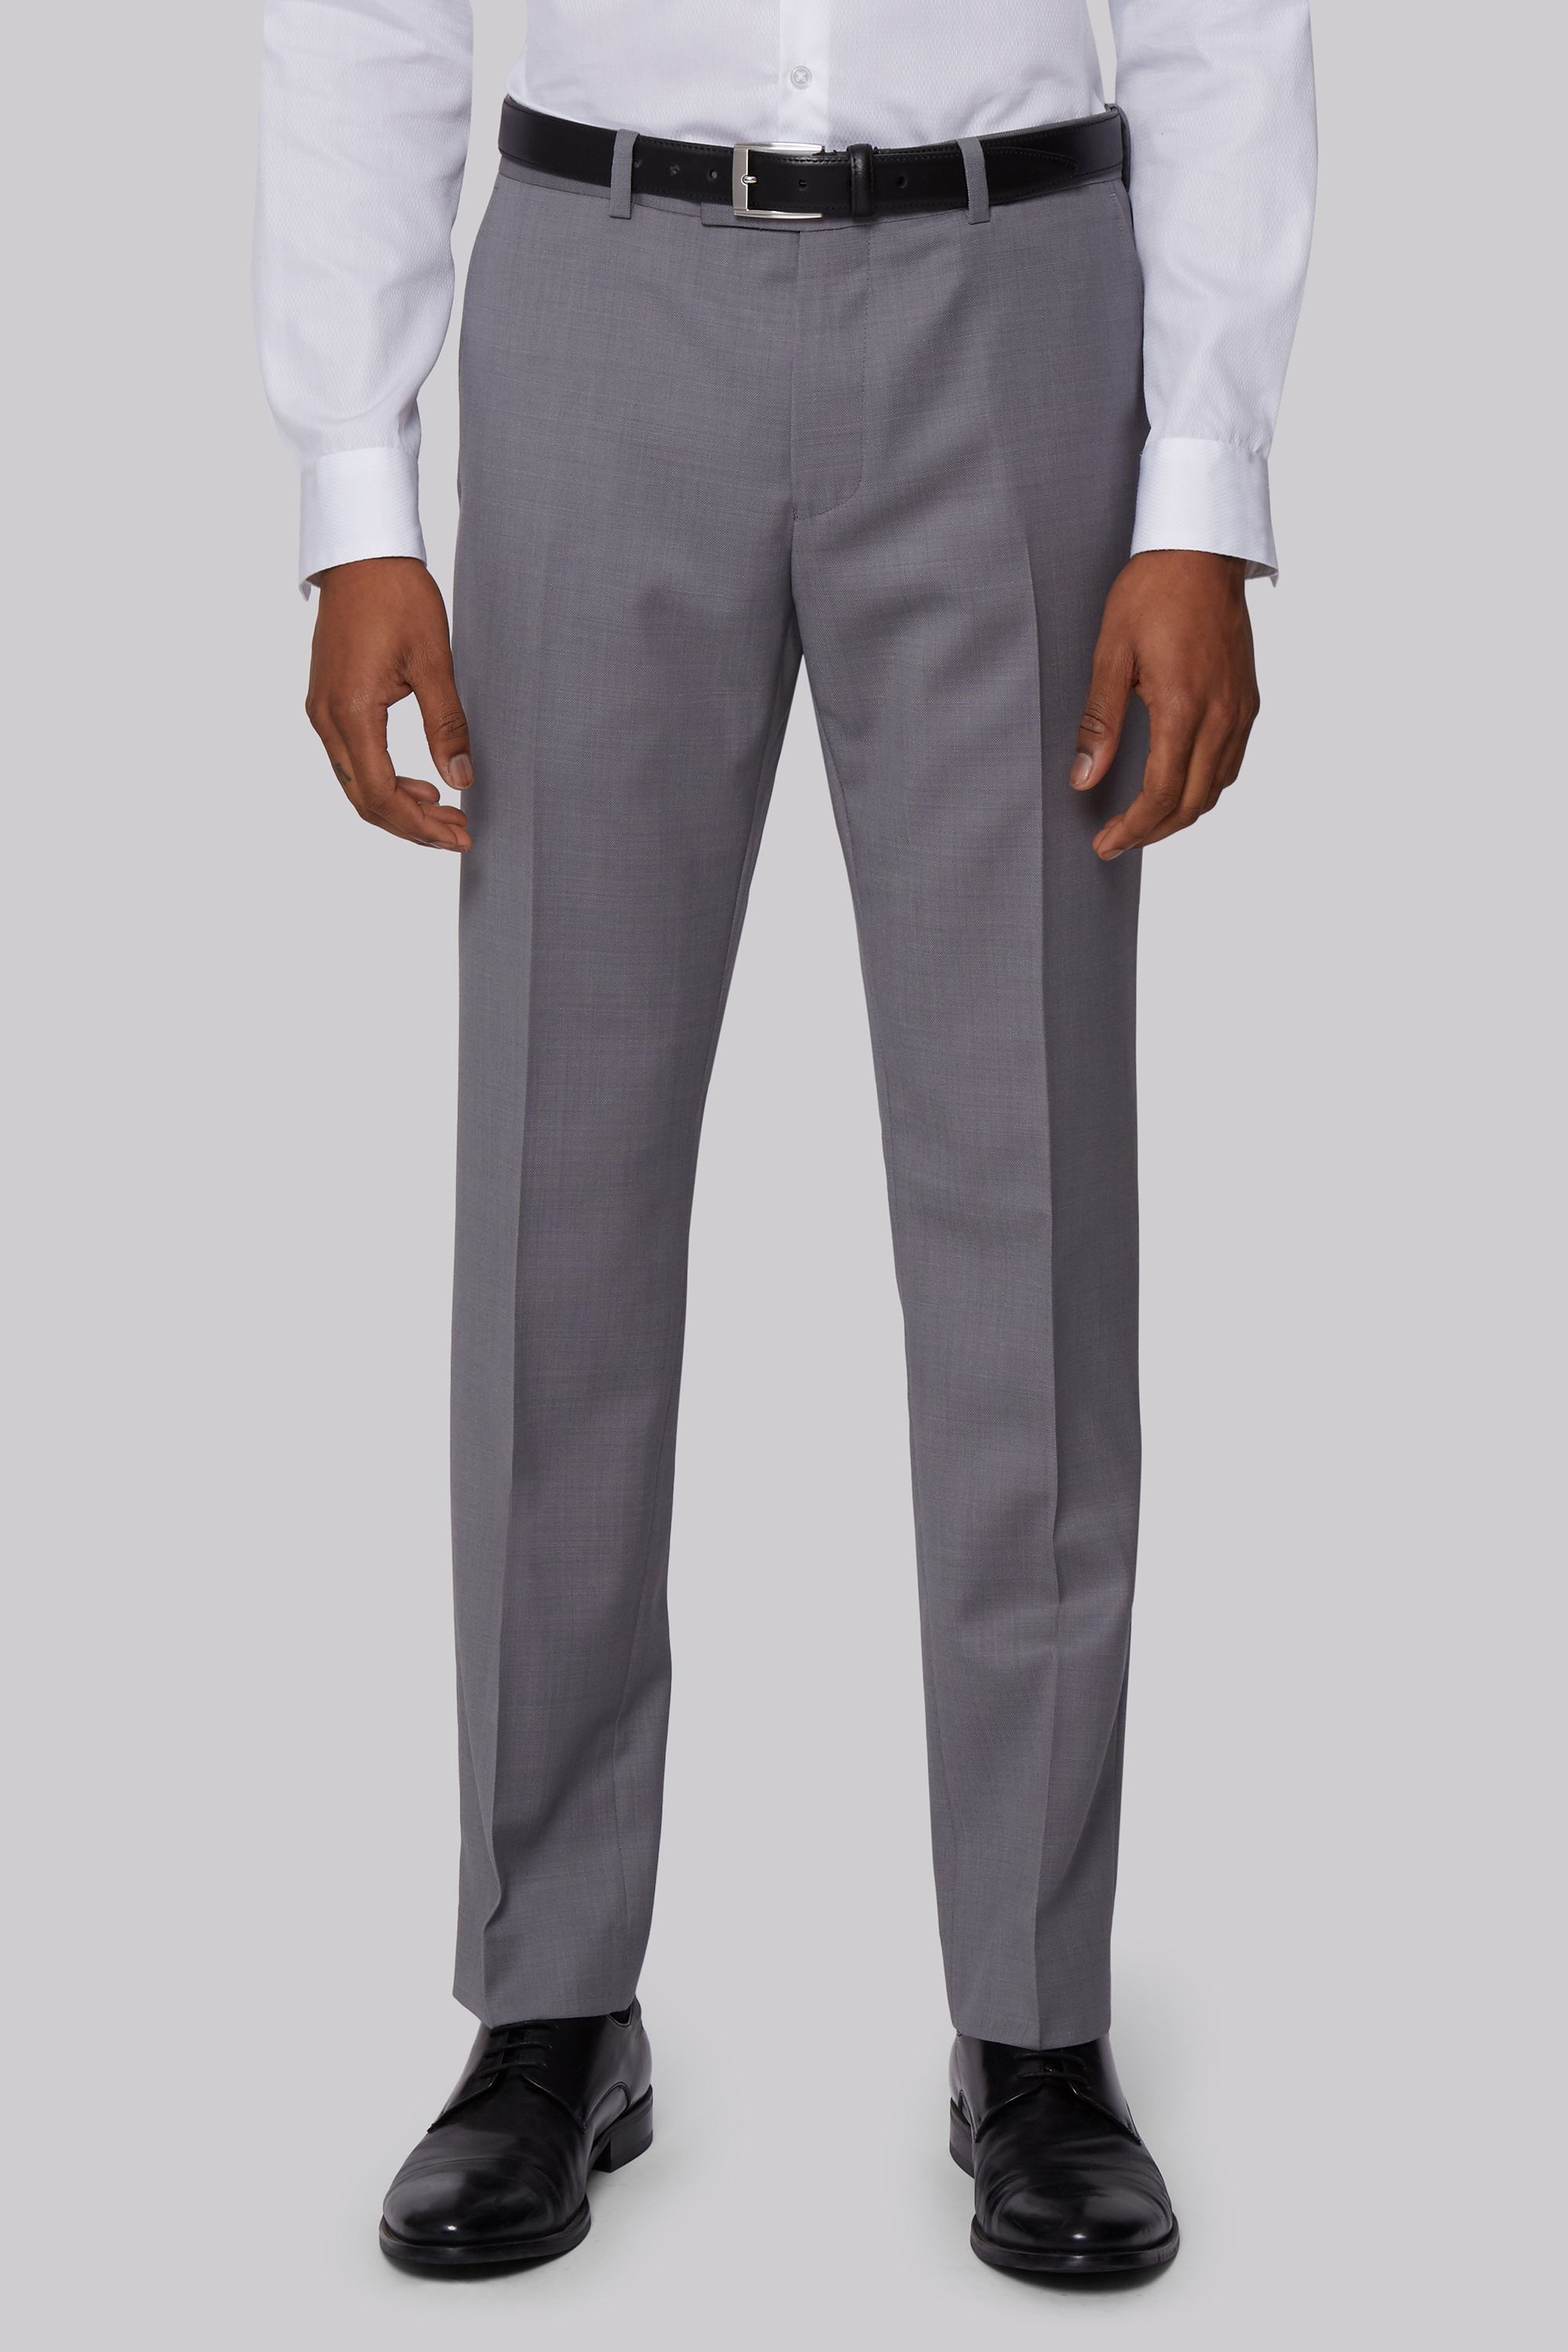 Moss Bros DKNY Slim Fit Neutral Pindot Trousers